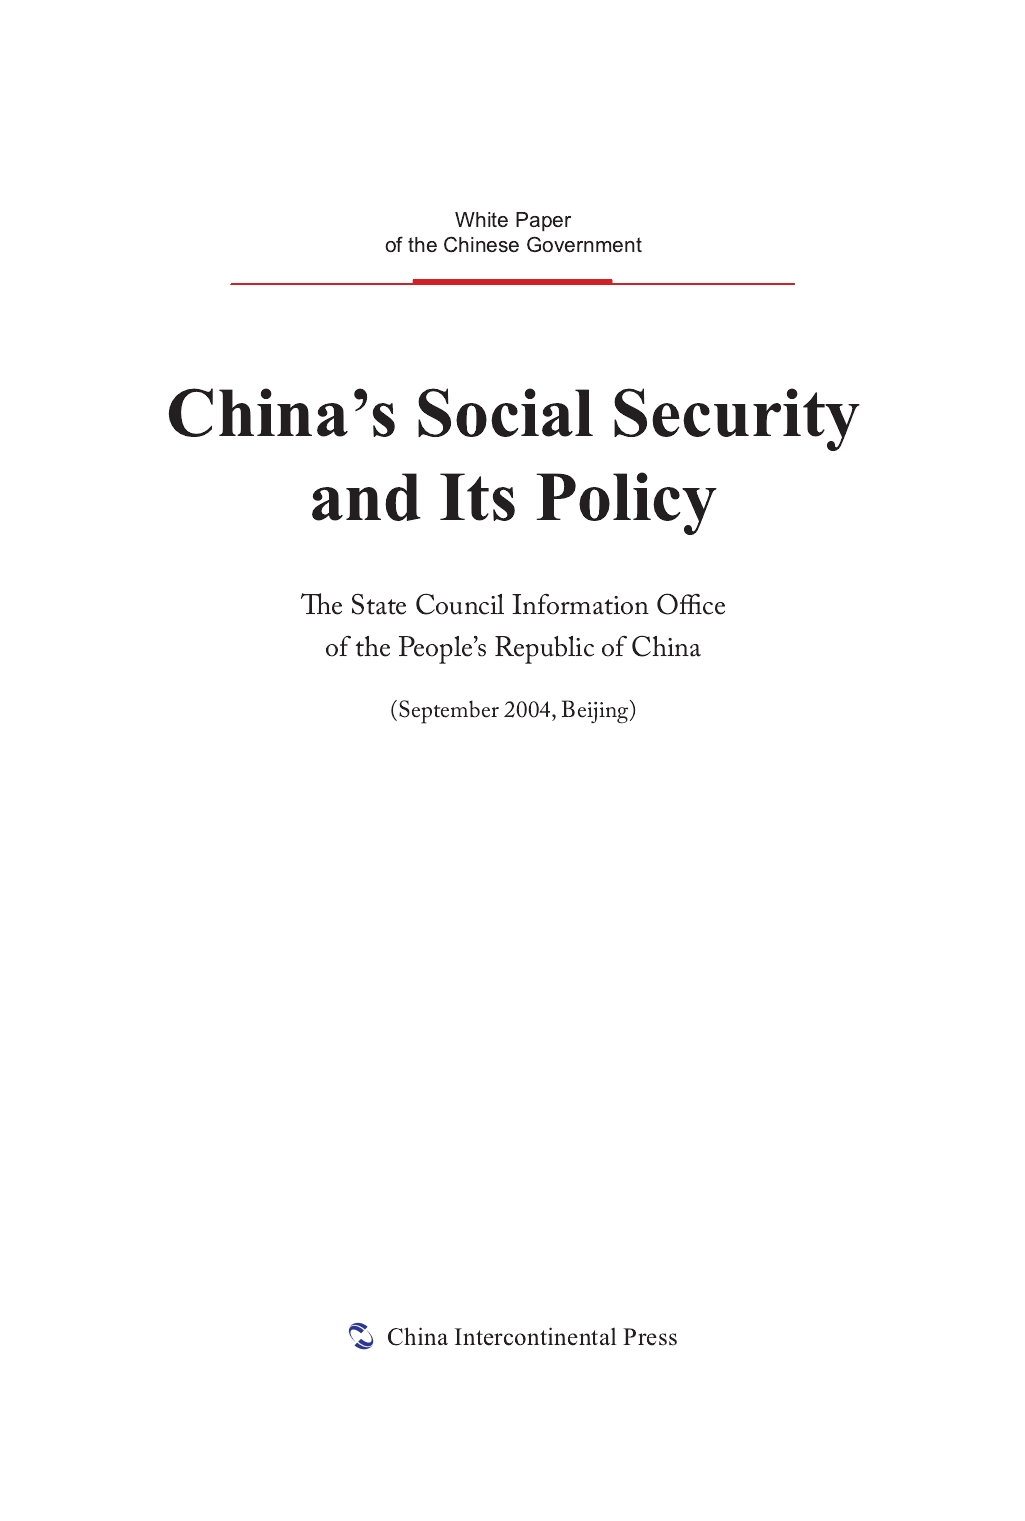 China's Social Security and Its Policy